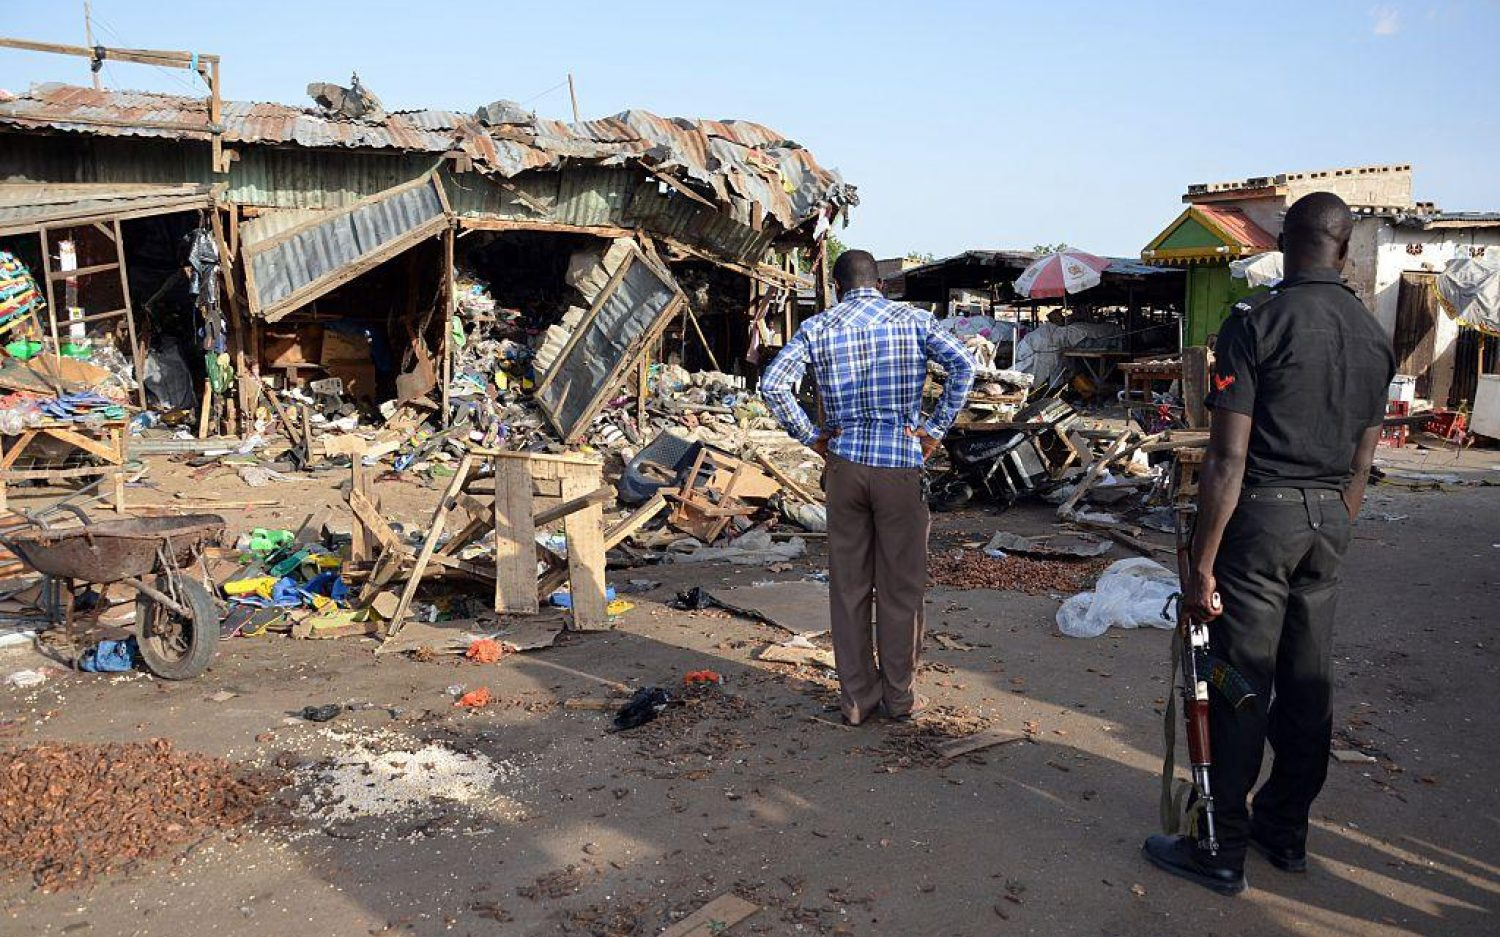 DOJ issued unanswered call to action on Boko Haram